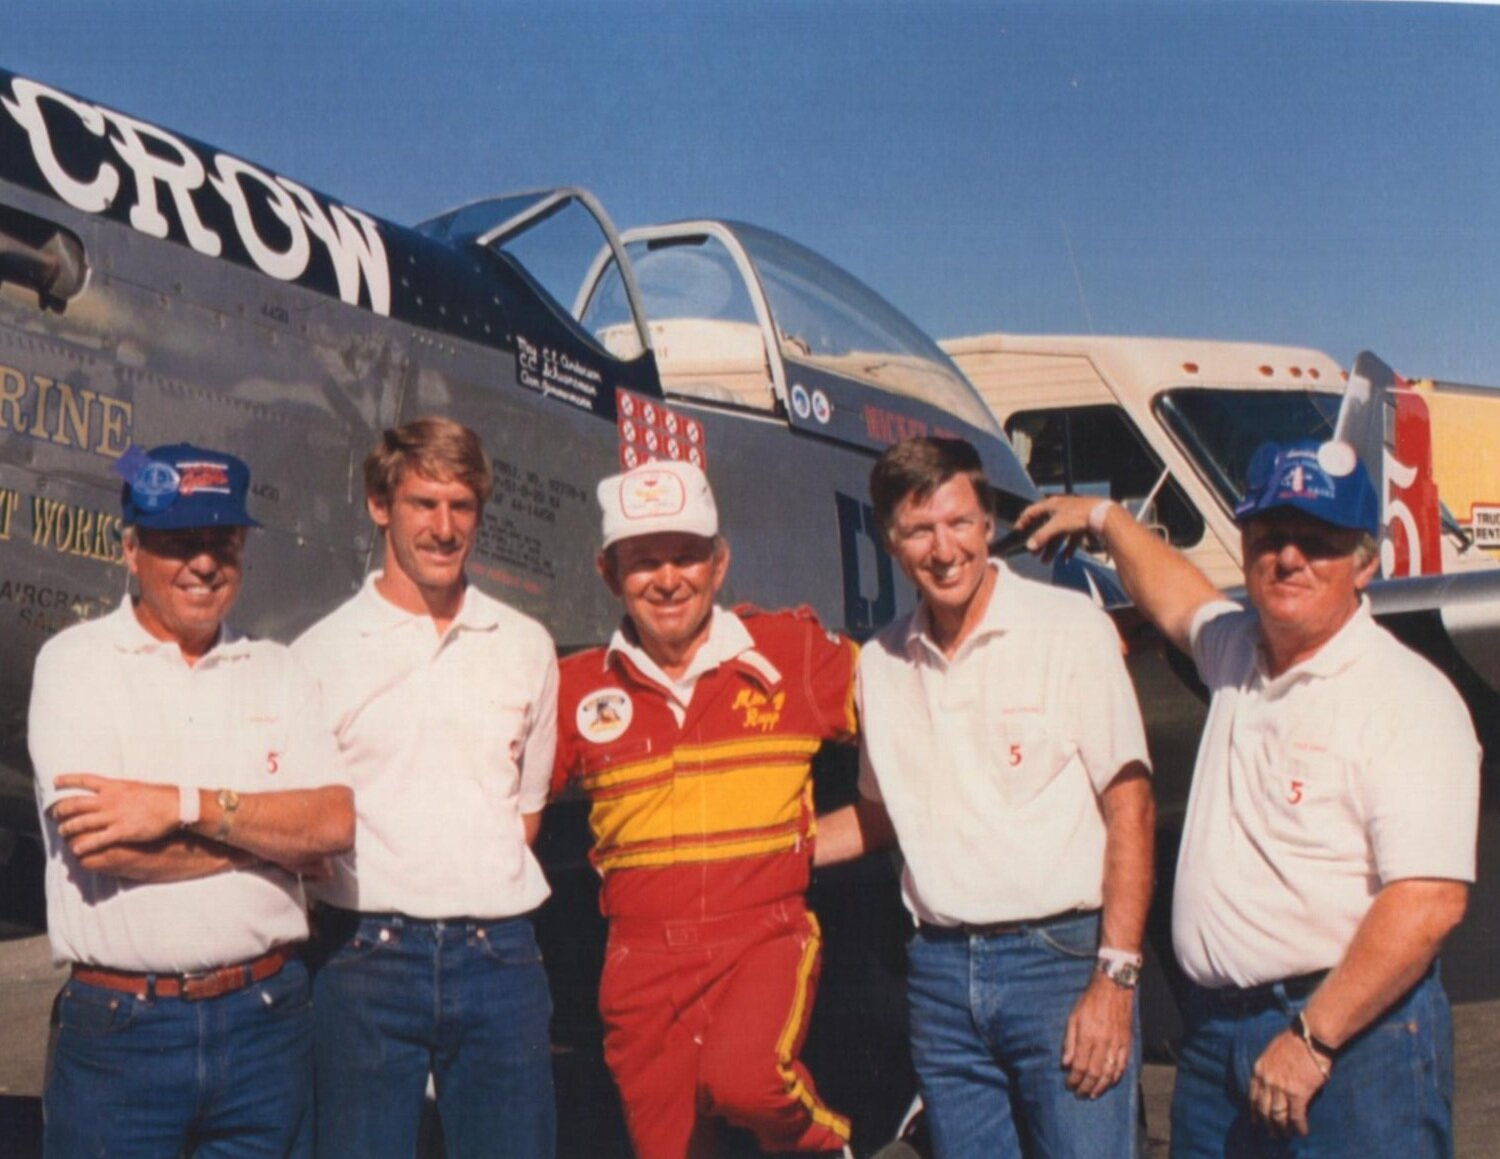 MICK WITH HIS RACING CREW